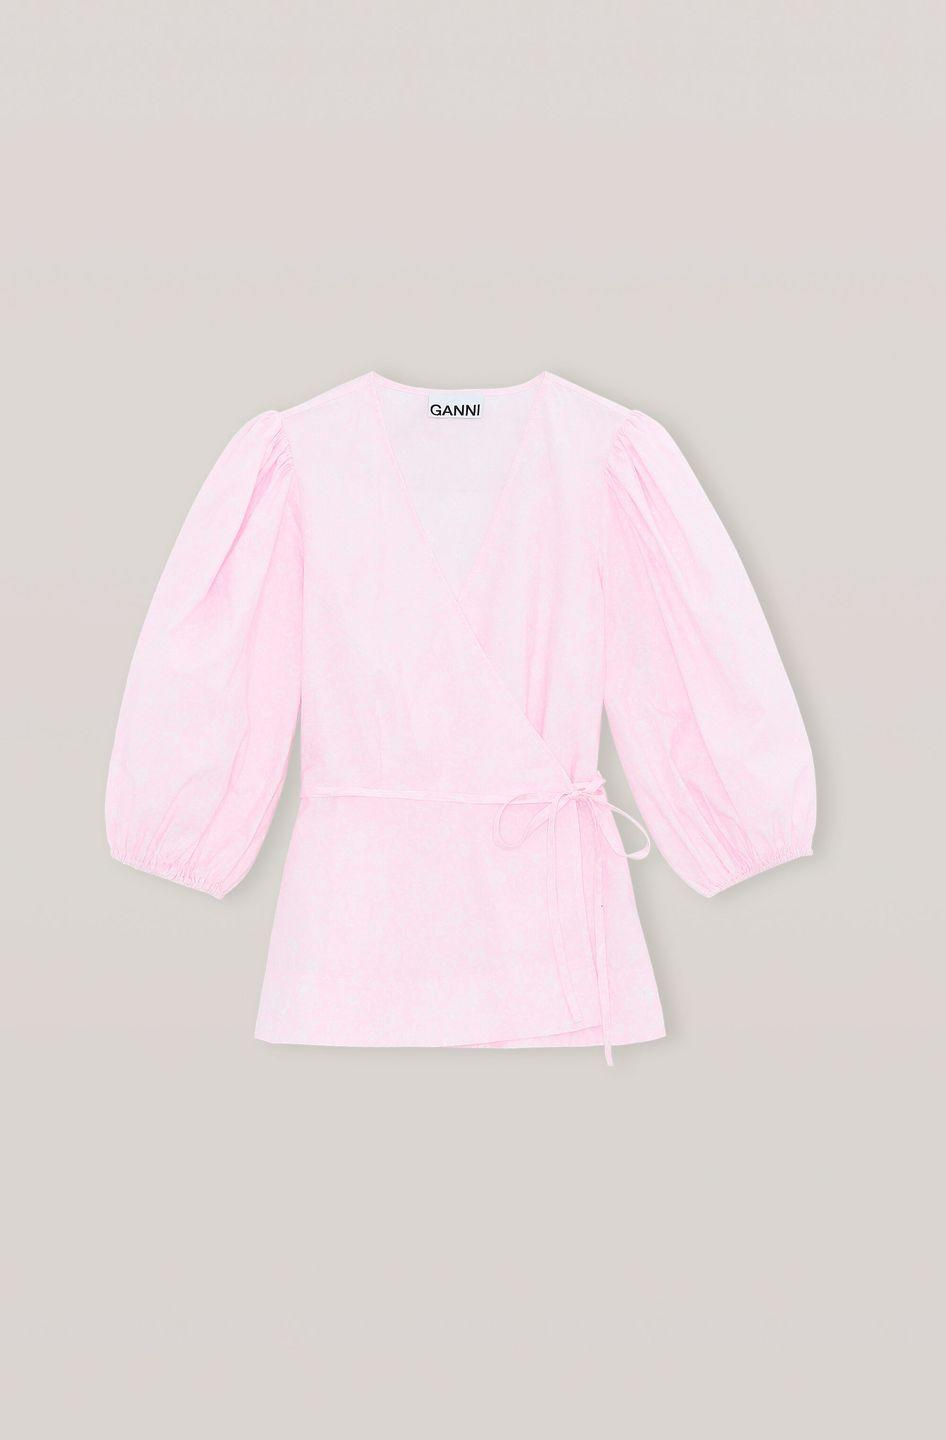 """<p><a class=""""link rapid-noclick-resp"""" href=""""https://go.redirectingat.com?id=127X1599956&url=https%3A%2F%2Fwww.ganni.com%2Fen-gb%2Fprinted-cotton-poplin-wrap-top-F4766.html%3Fdwvar_F4766_color%3DCherry%2BBlossom&sref=https%3A%2F%2Fwww.townandcountrymag.com%2Fuk%2Fstyle%2Fg35350261%2Fvalentines-day-outfits%2F"""" rel=""""nofollow noopener"""" target=""""_blank"""" data-ylk=""""slk:SHOP NOW"""">SHOP NOW</a></p><p>The puff sleeves on this Ganni blouse bring a touch of feminine playfulness to Valentine's Day.</p><p>Cotton poplin wrap top, £73, Ganni.</p>"""